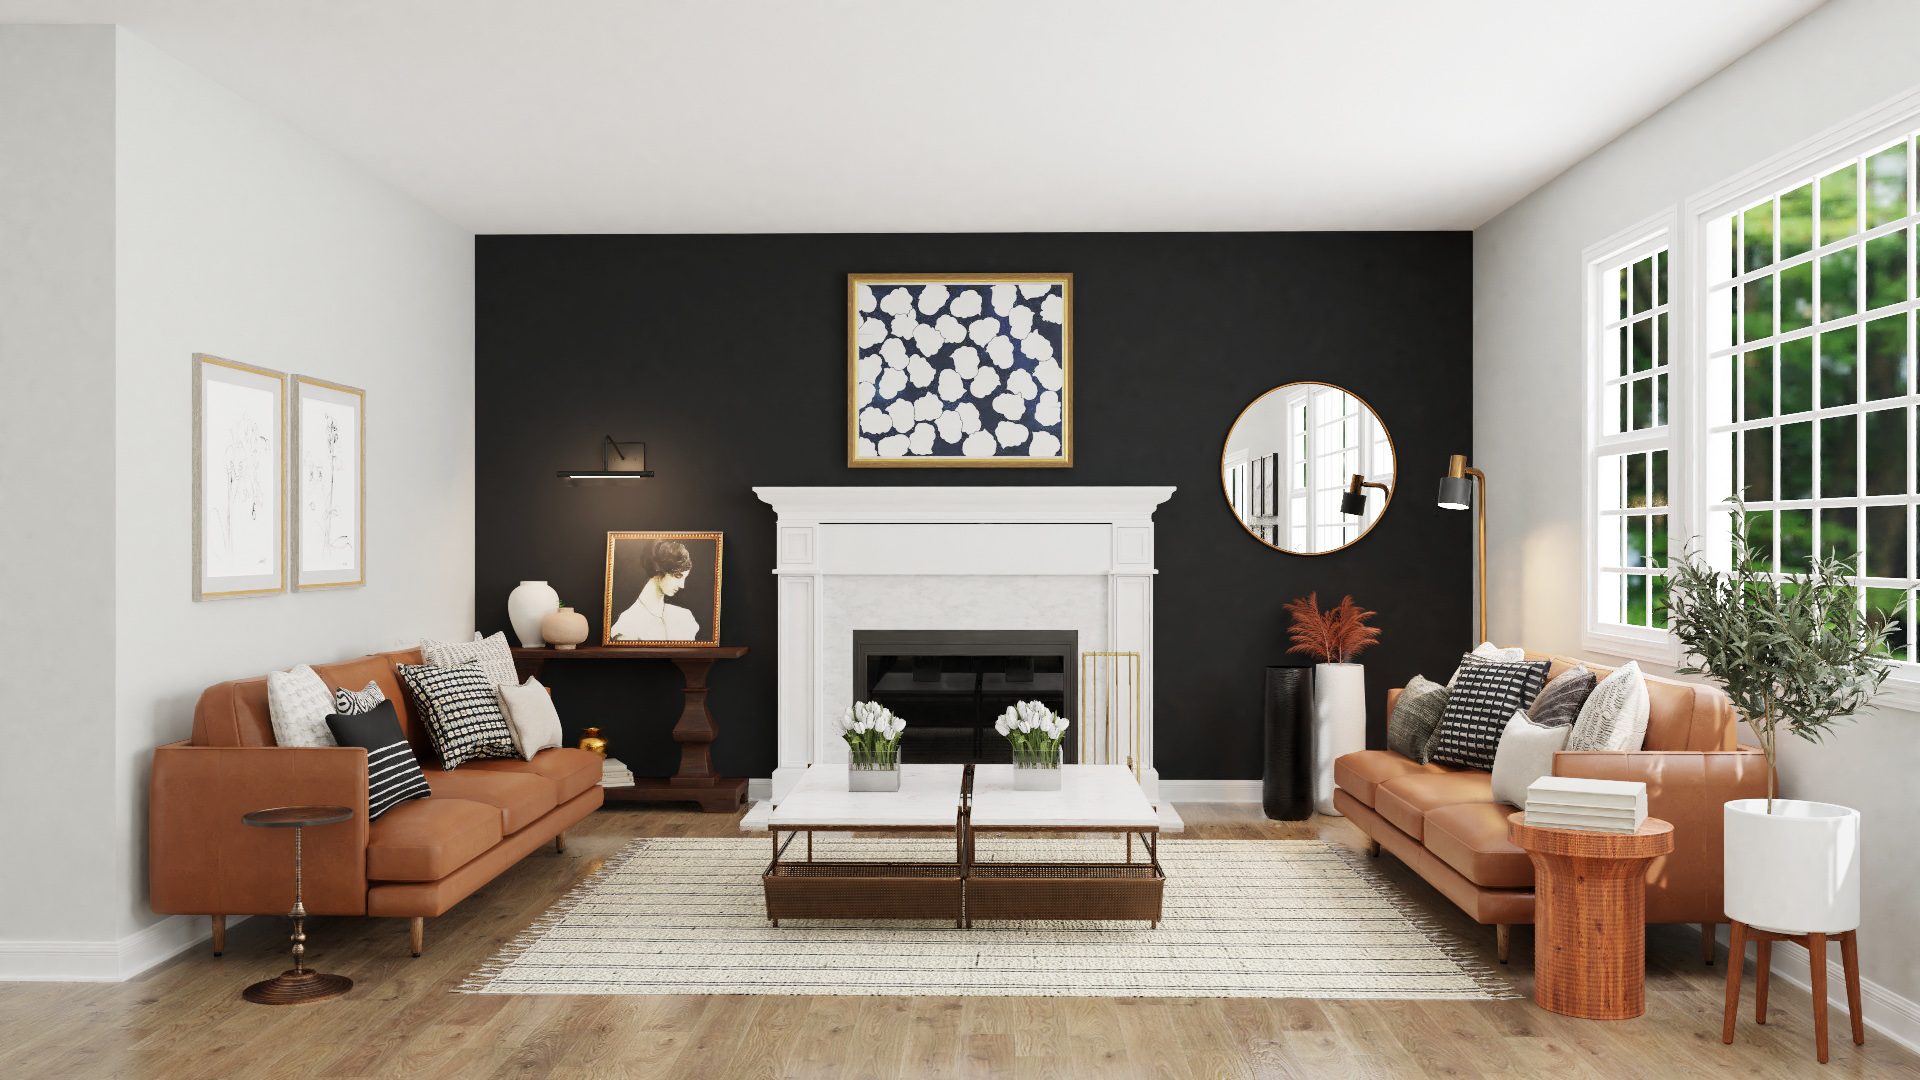 Best Popular Living Room Paint Colors Of 2020 You Should Know Spacejoy